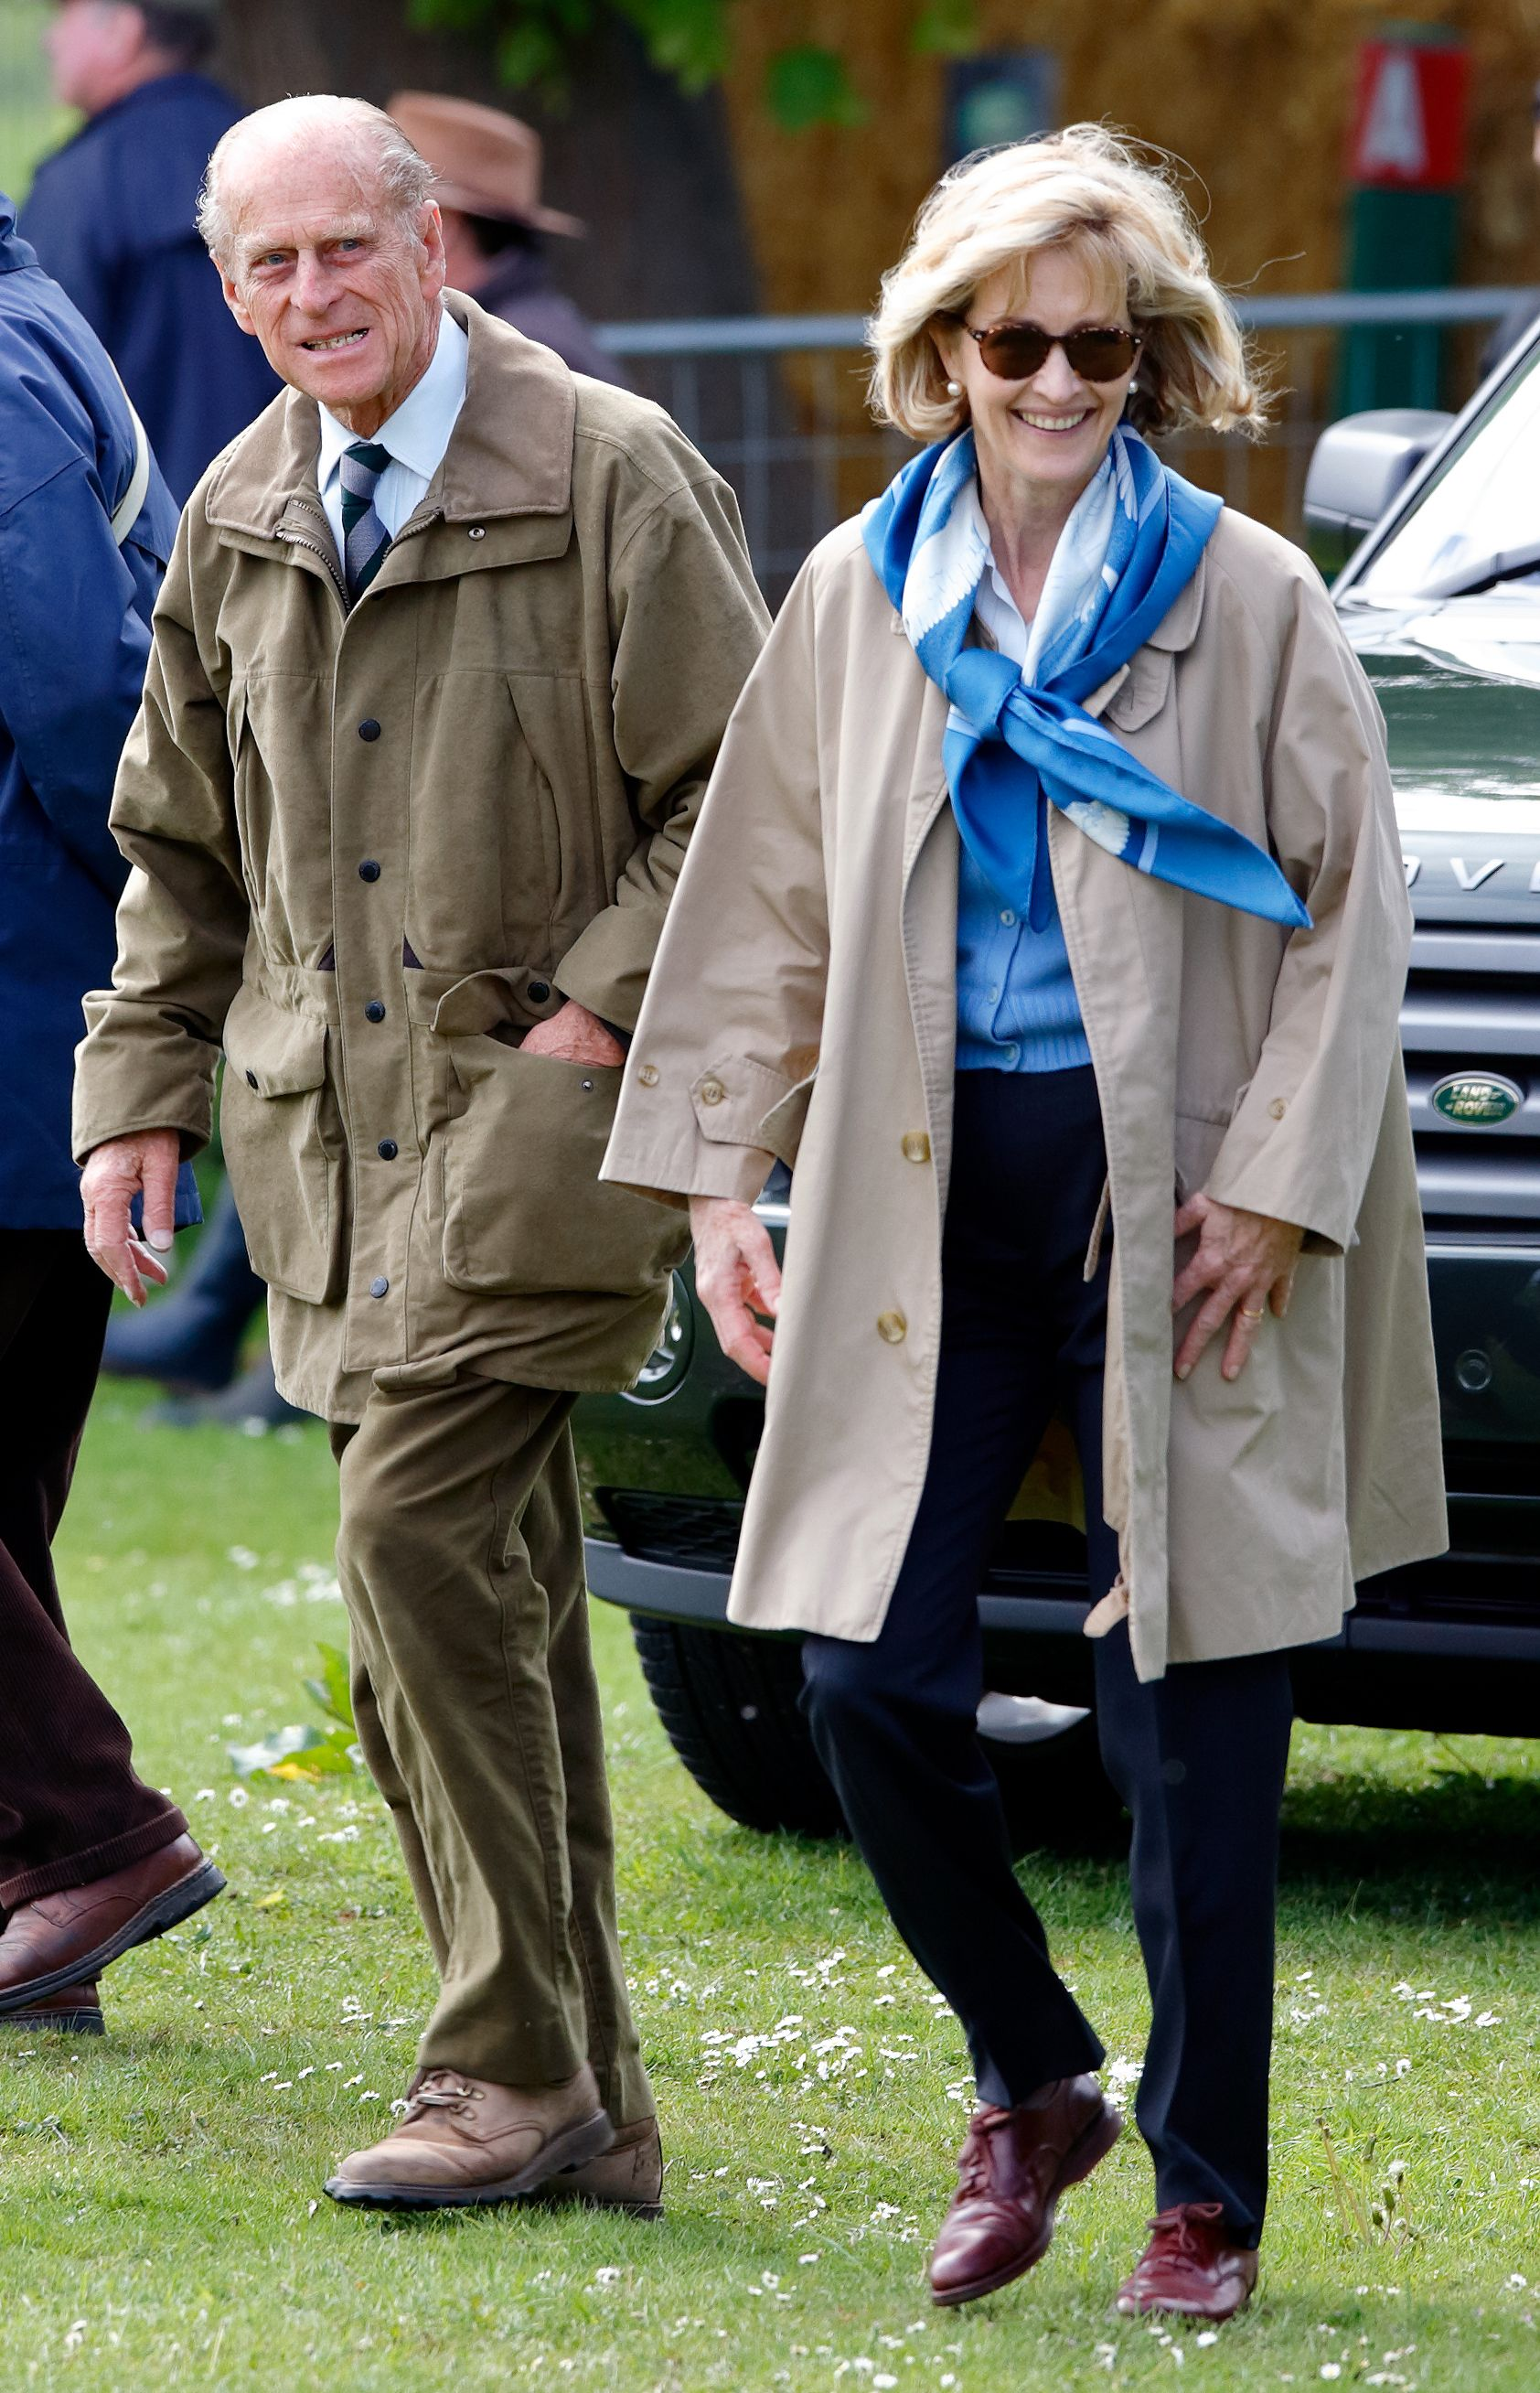 Prince Philip and Penelope Knatchbull, Lady Brabourne at day 3 of the Royal Windsor Horse Show in Home Park on May 12, 2007 | Photo: Getty Images